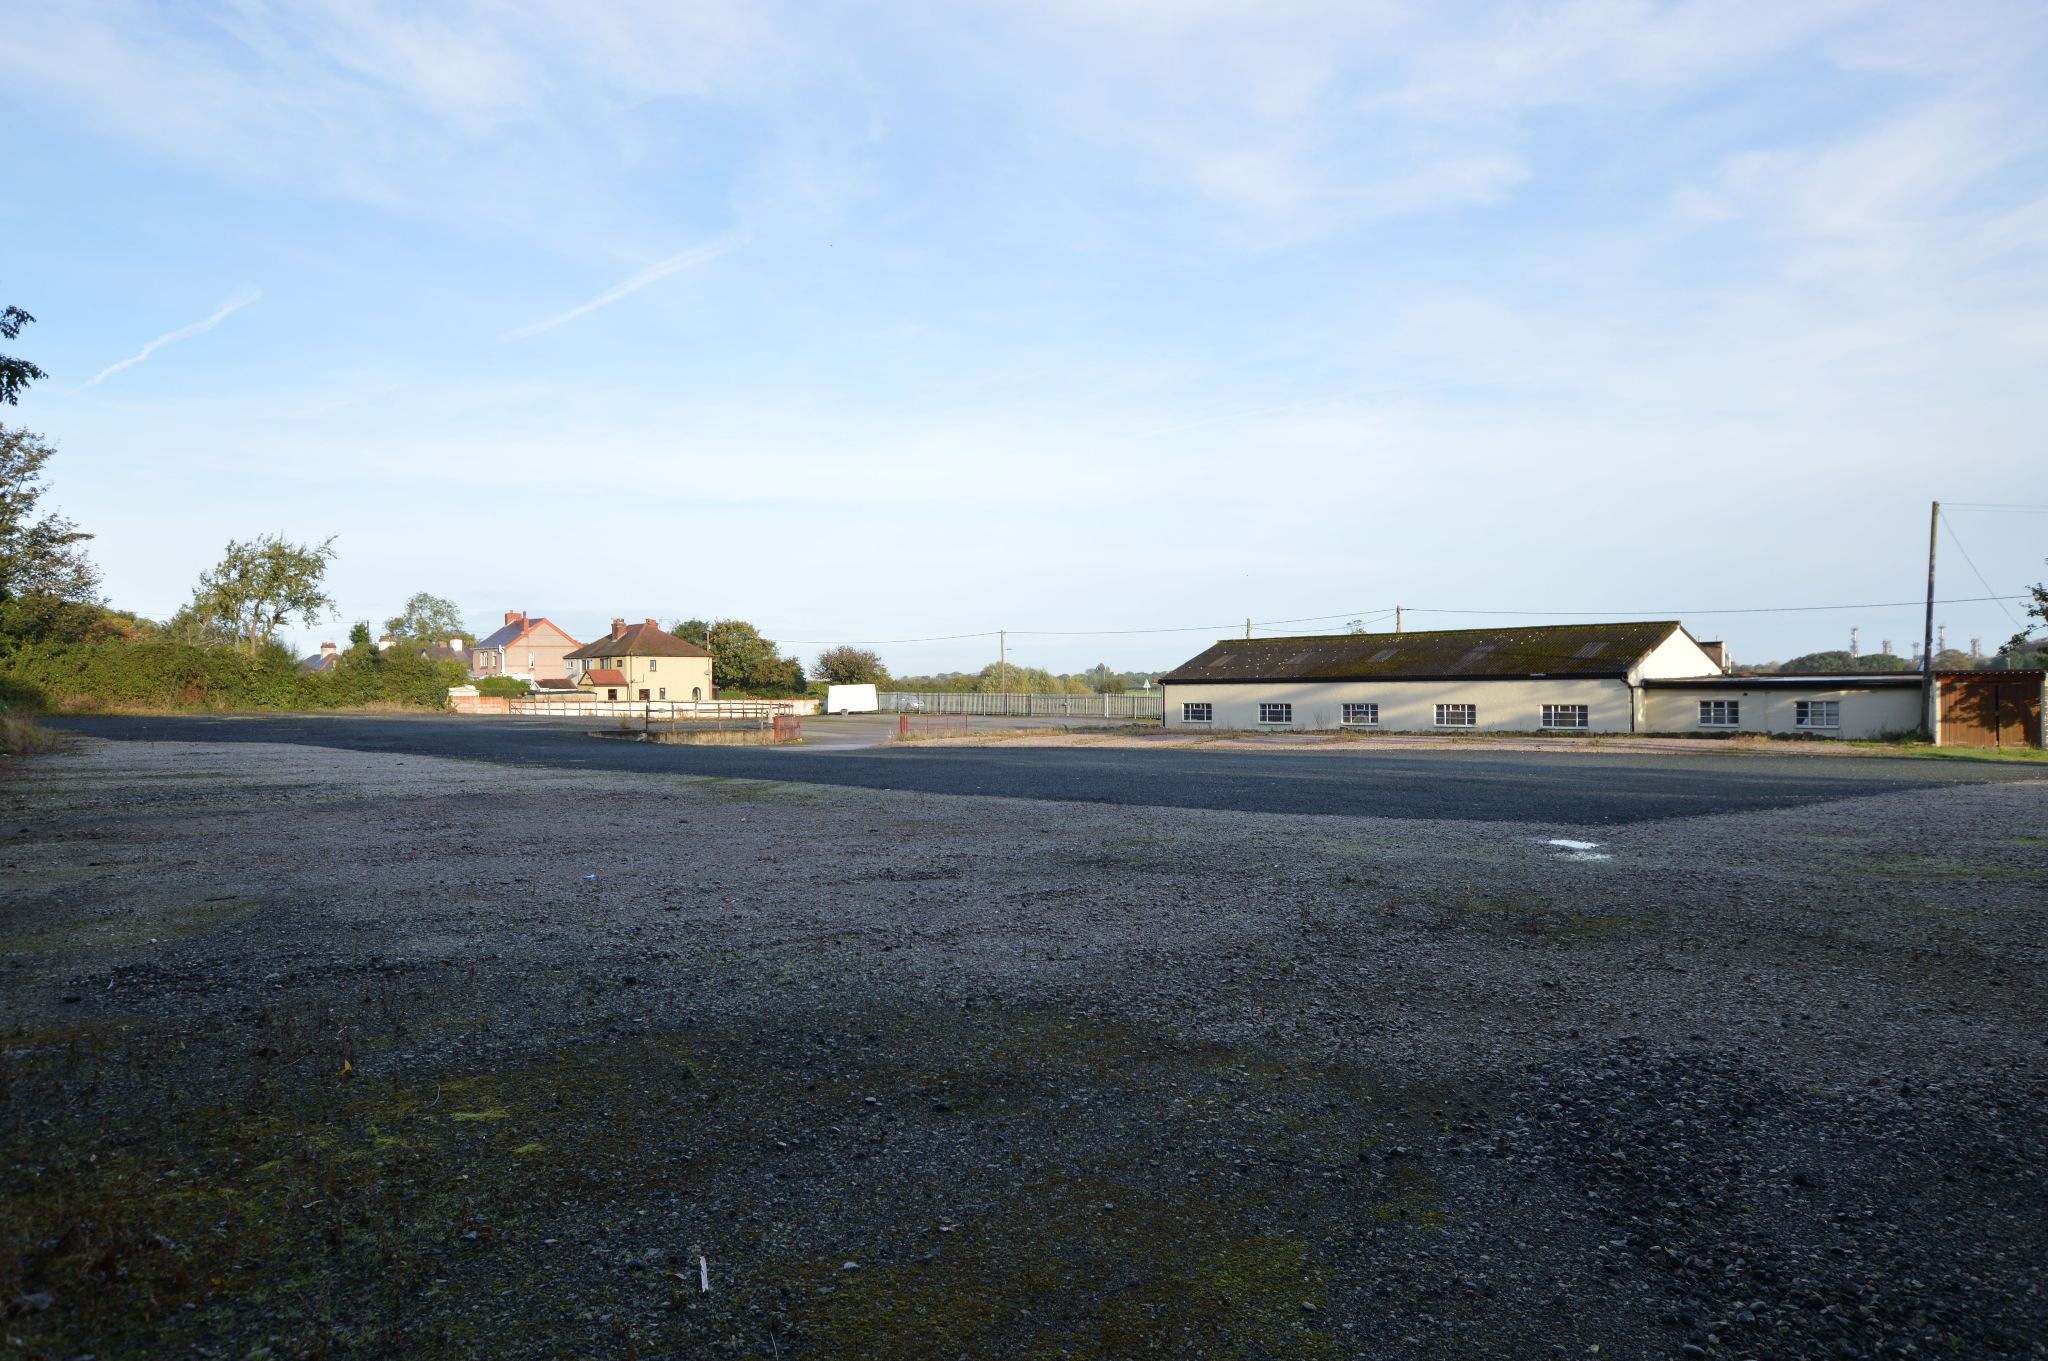 Land For Sale in Holywell - Land View 4